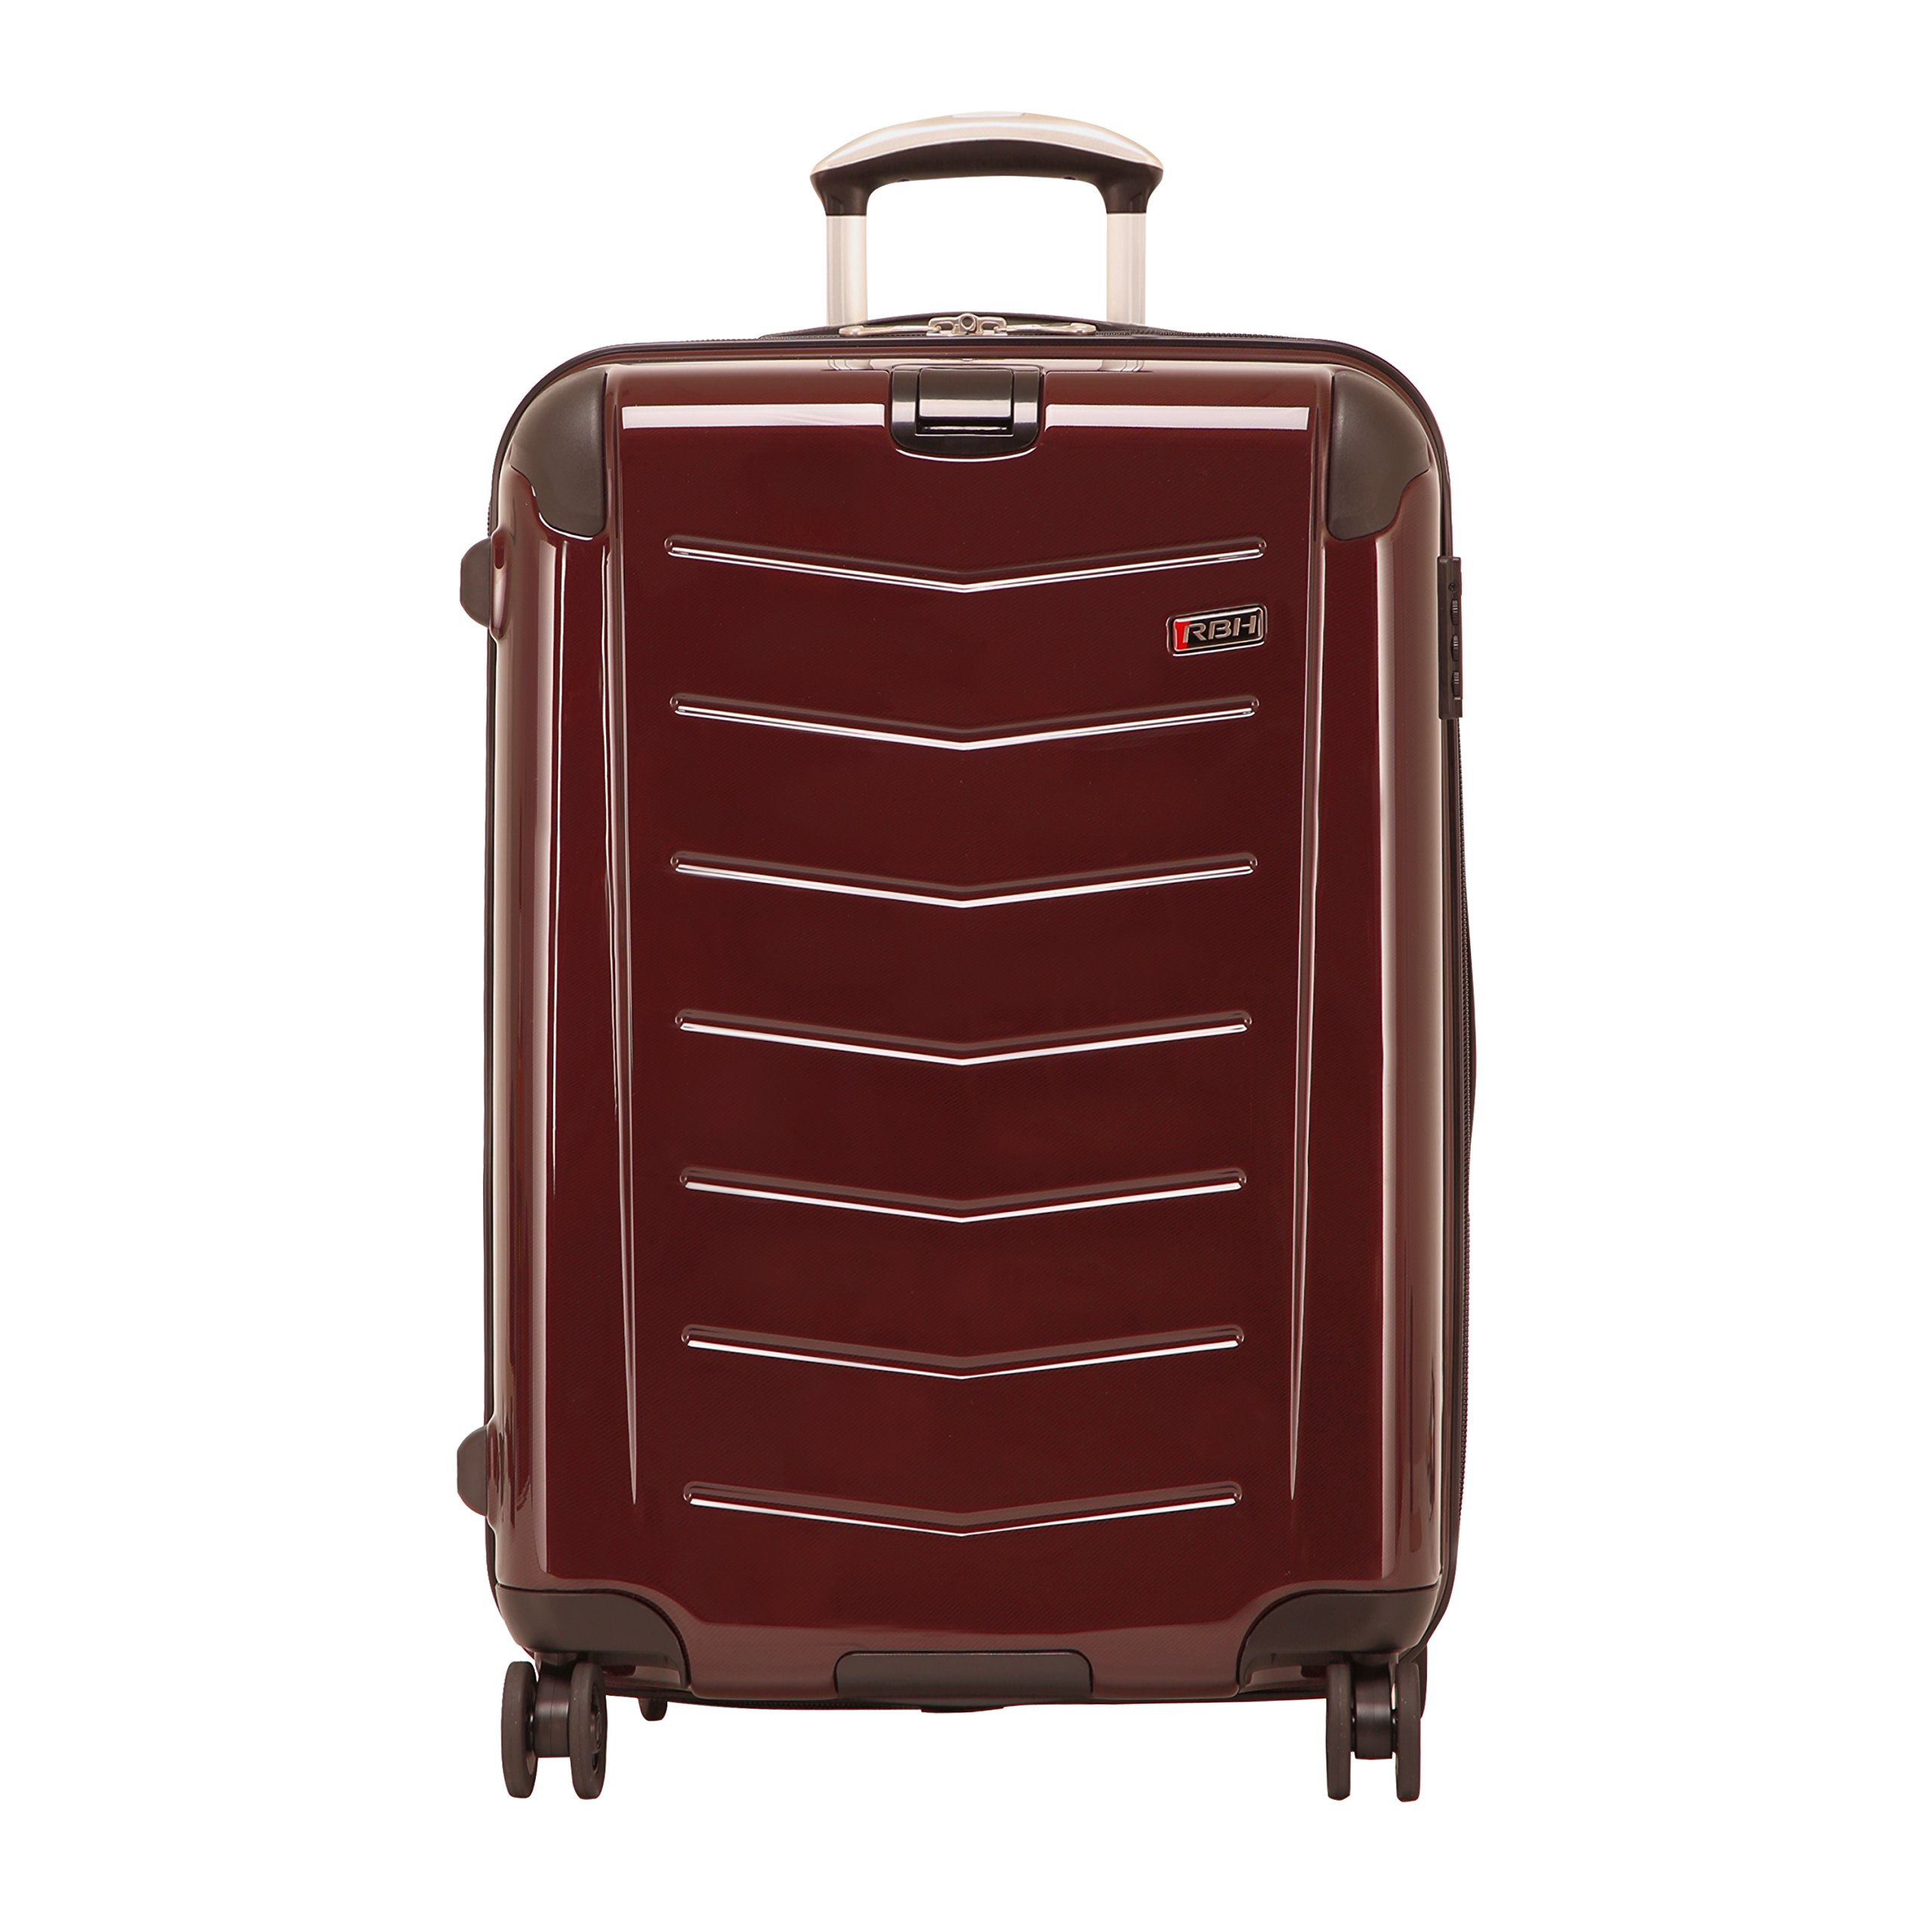 Ricardo Beverly Hills Luggage Rodeo Drive 25-Inch 4-Wheel Expandable Upright, Black Cherry, One Size